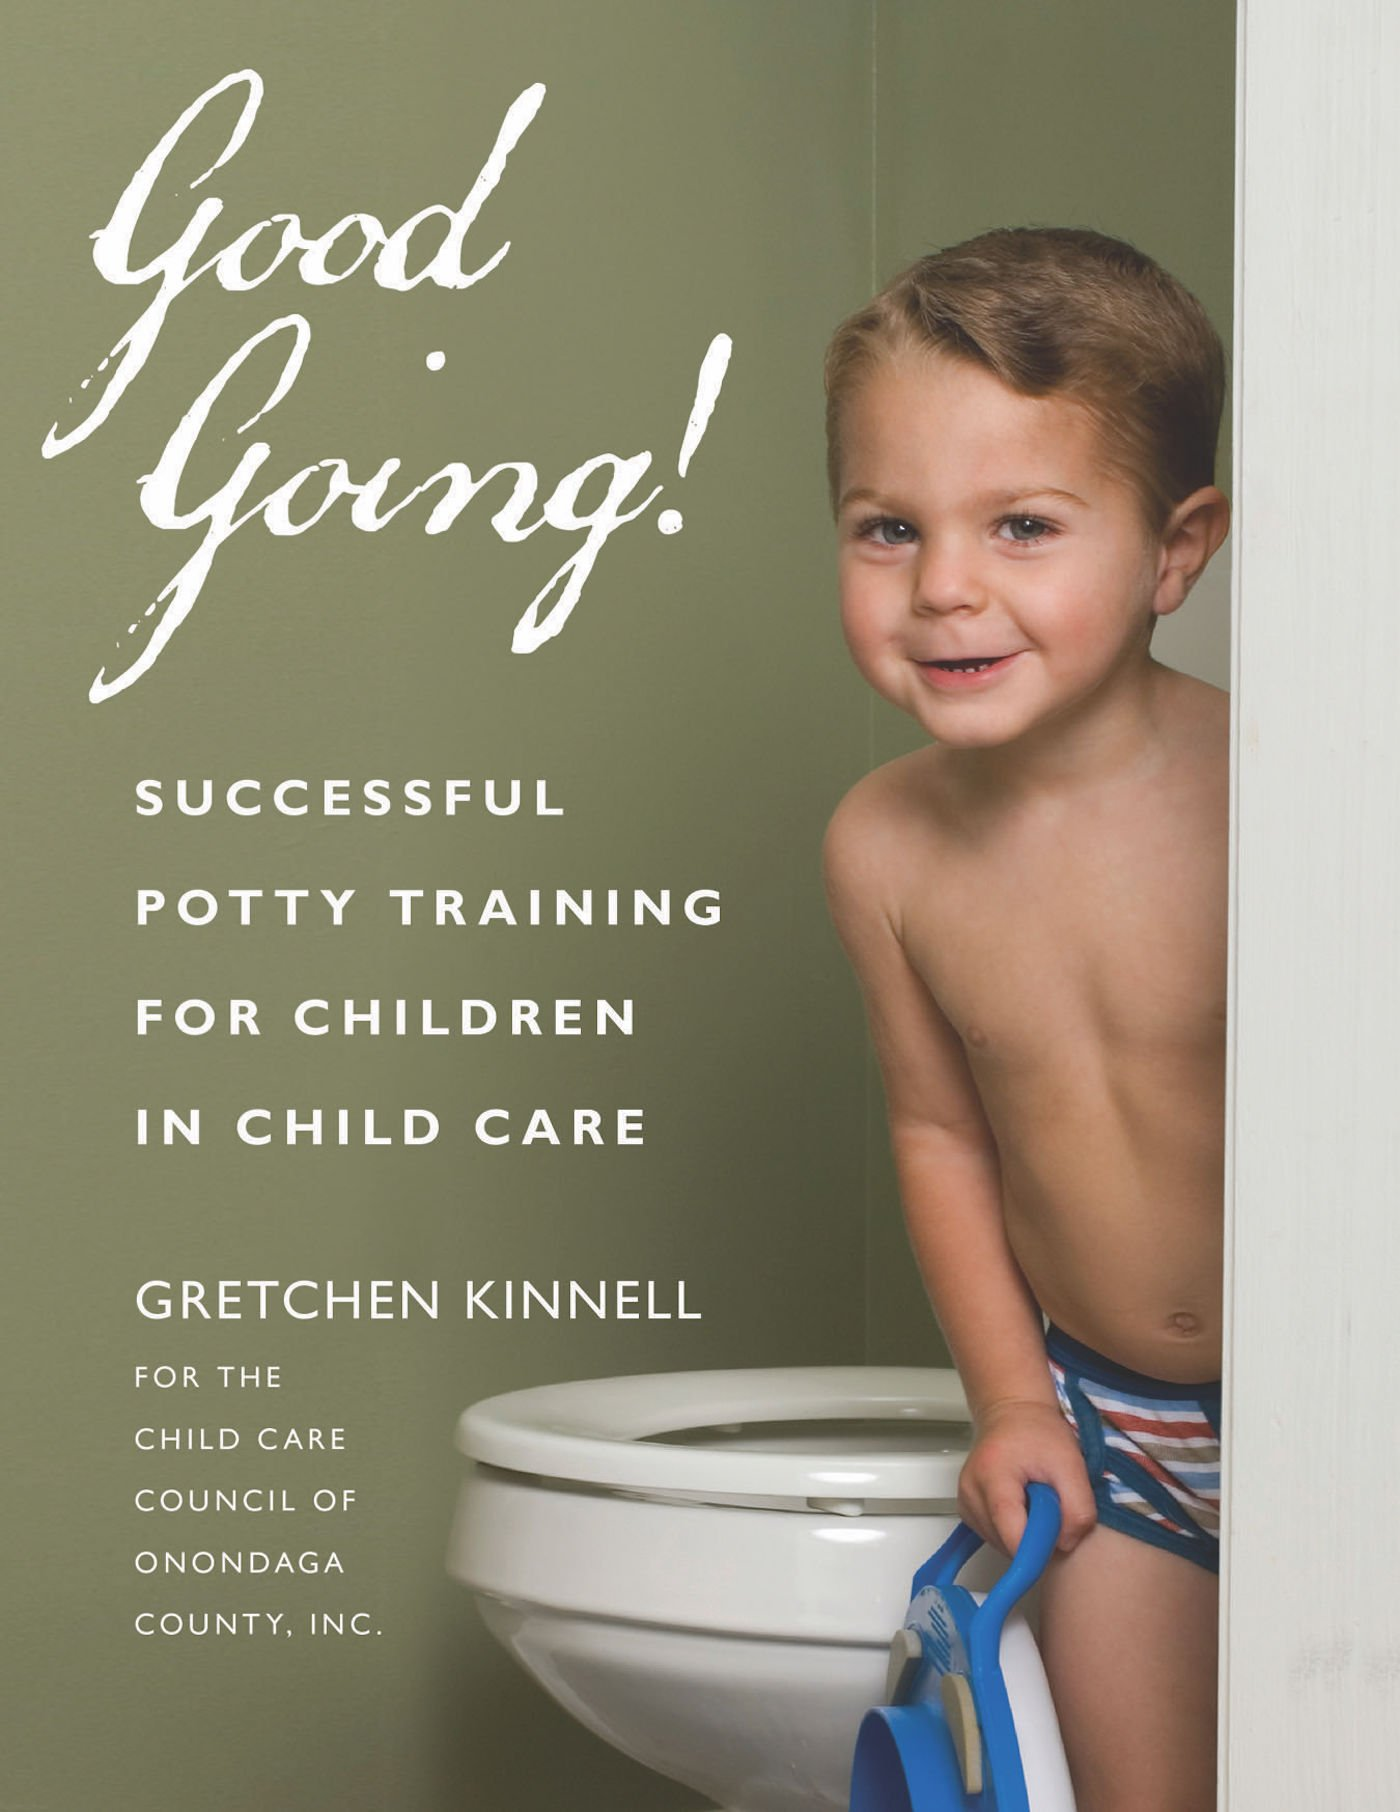 When Not to Start Potty Training